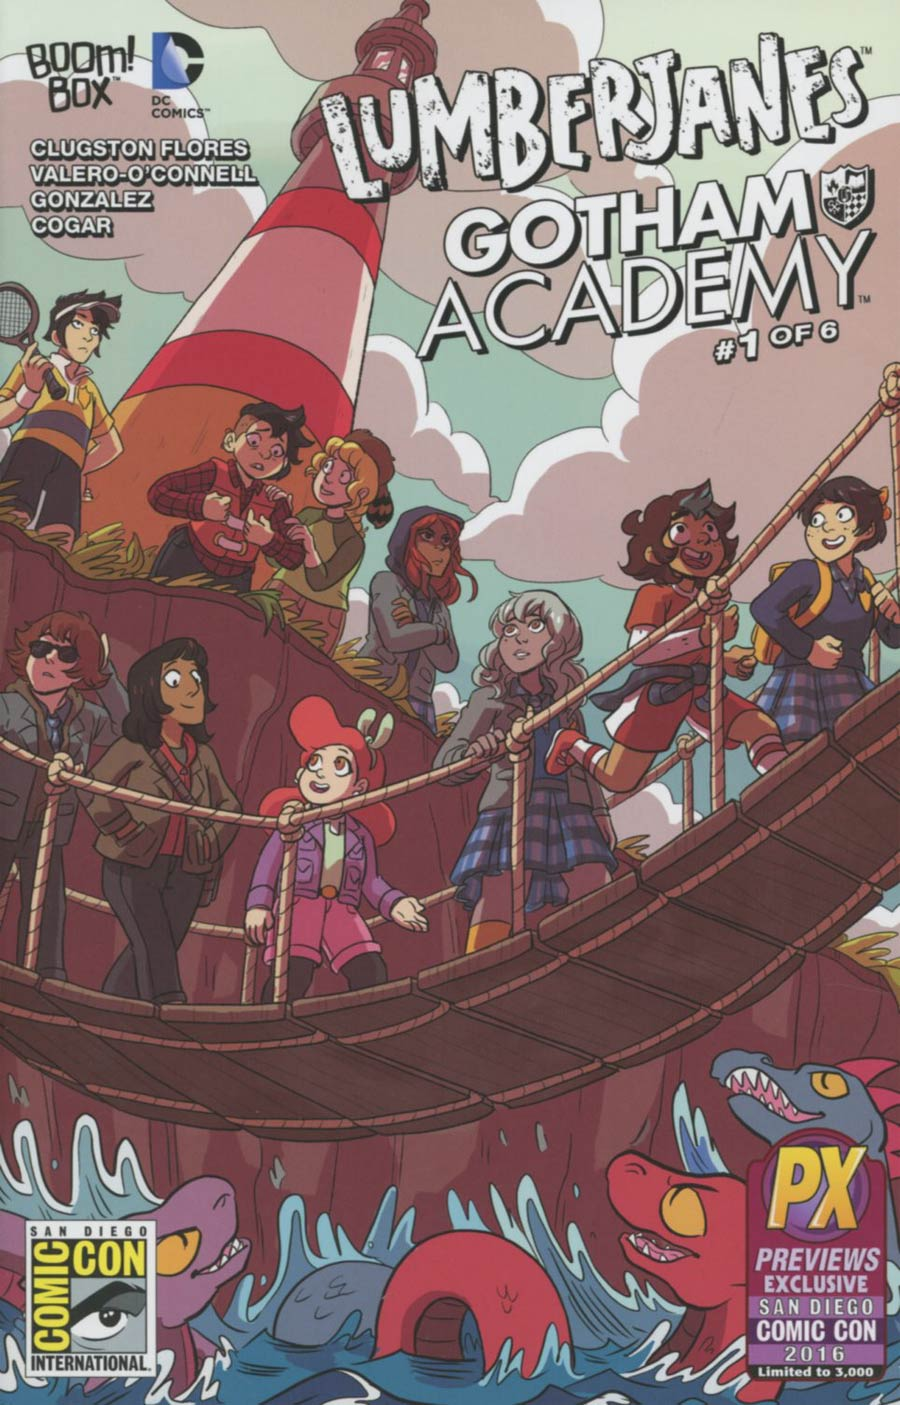 Lumberjanes Gotham Academy #1 Cover F SDCC 2016 Exclusive Variant Cover